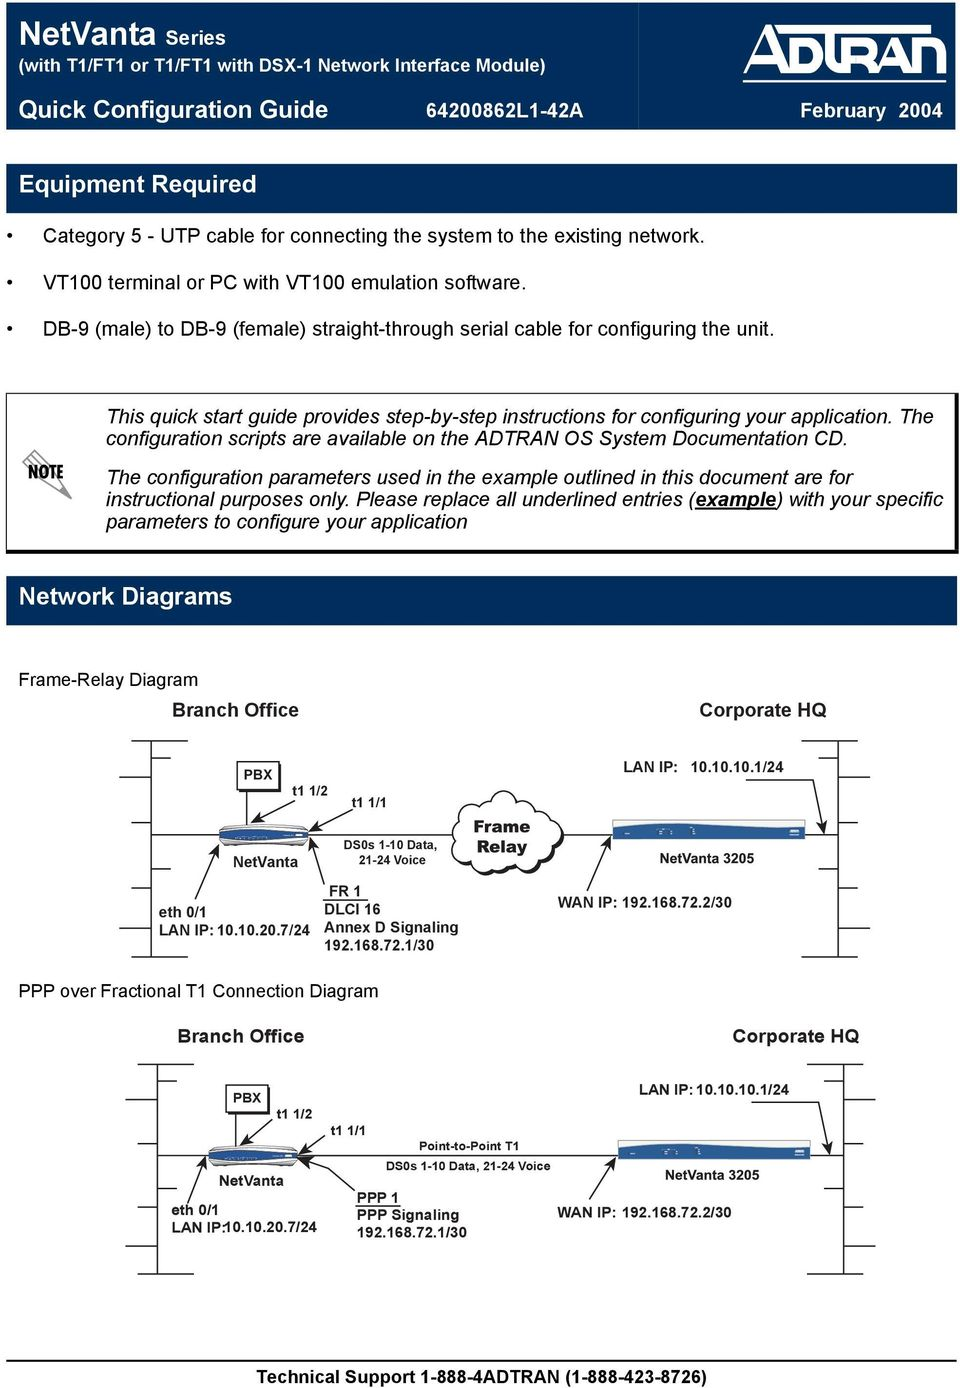 DB-9 (male) to DB-9 (female) straight-through serial cable for configuring the unit. This quick start guide provides step-by-step instructions for configuring your application.